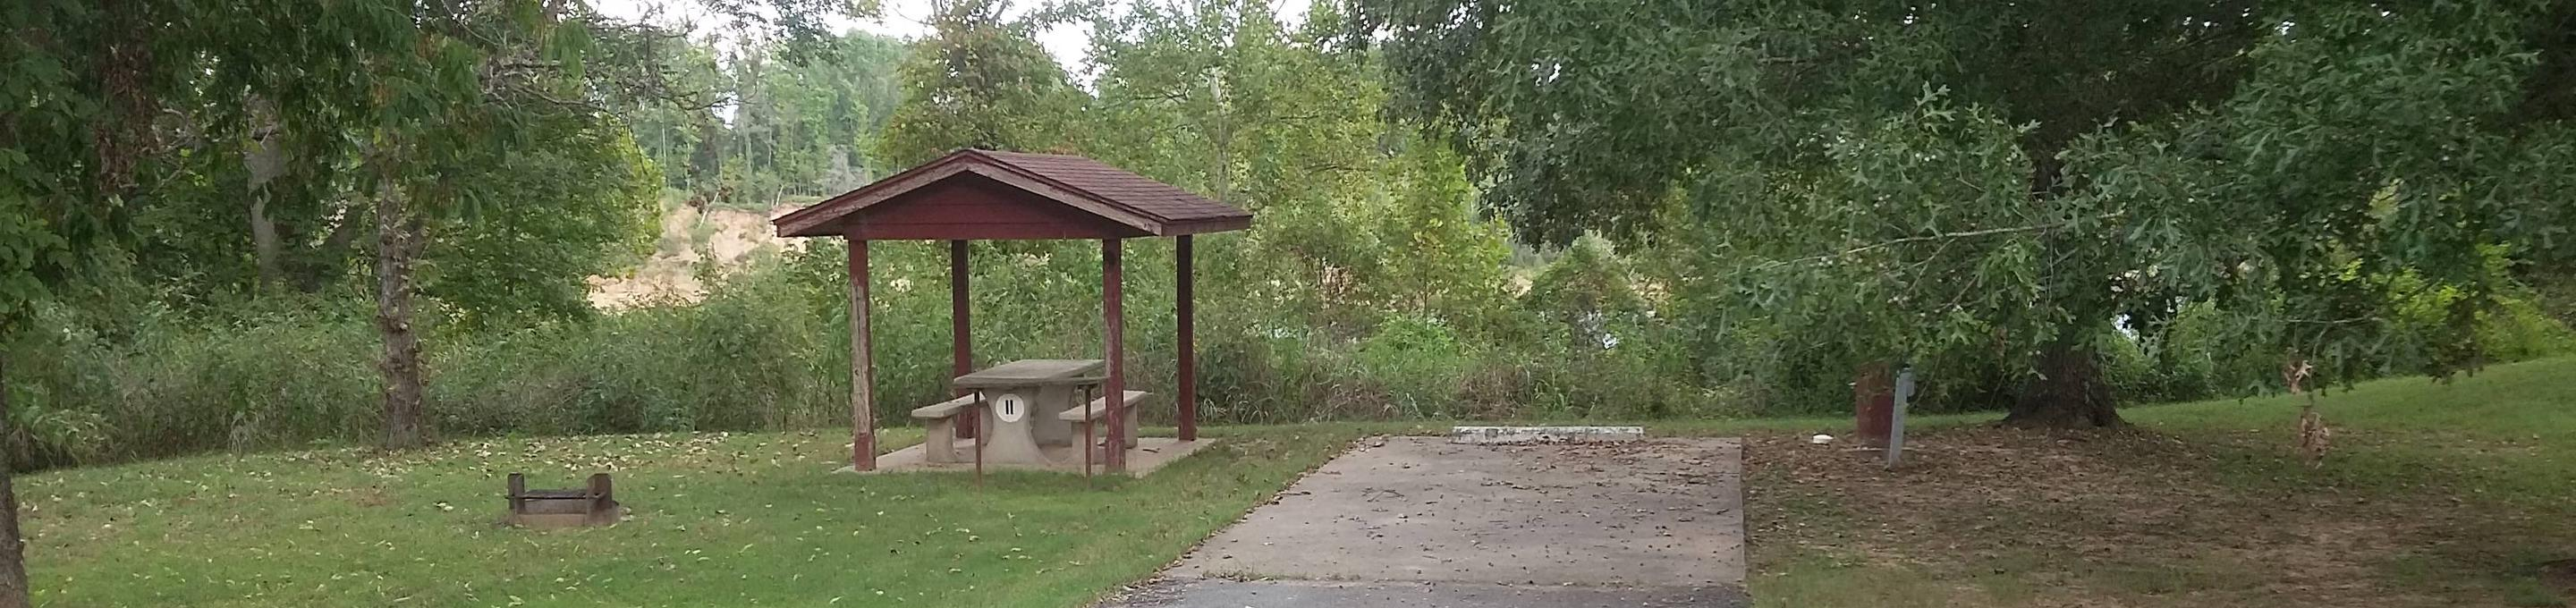 100 Yards to Shower/Restroom. 300 Yards to Arkansas River Access.Site 11